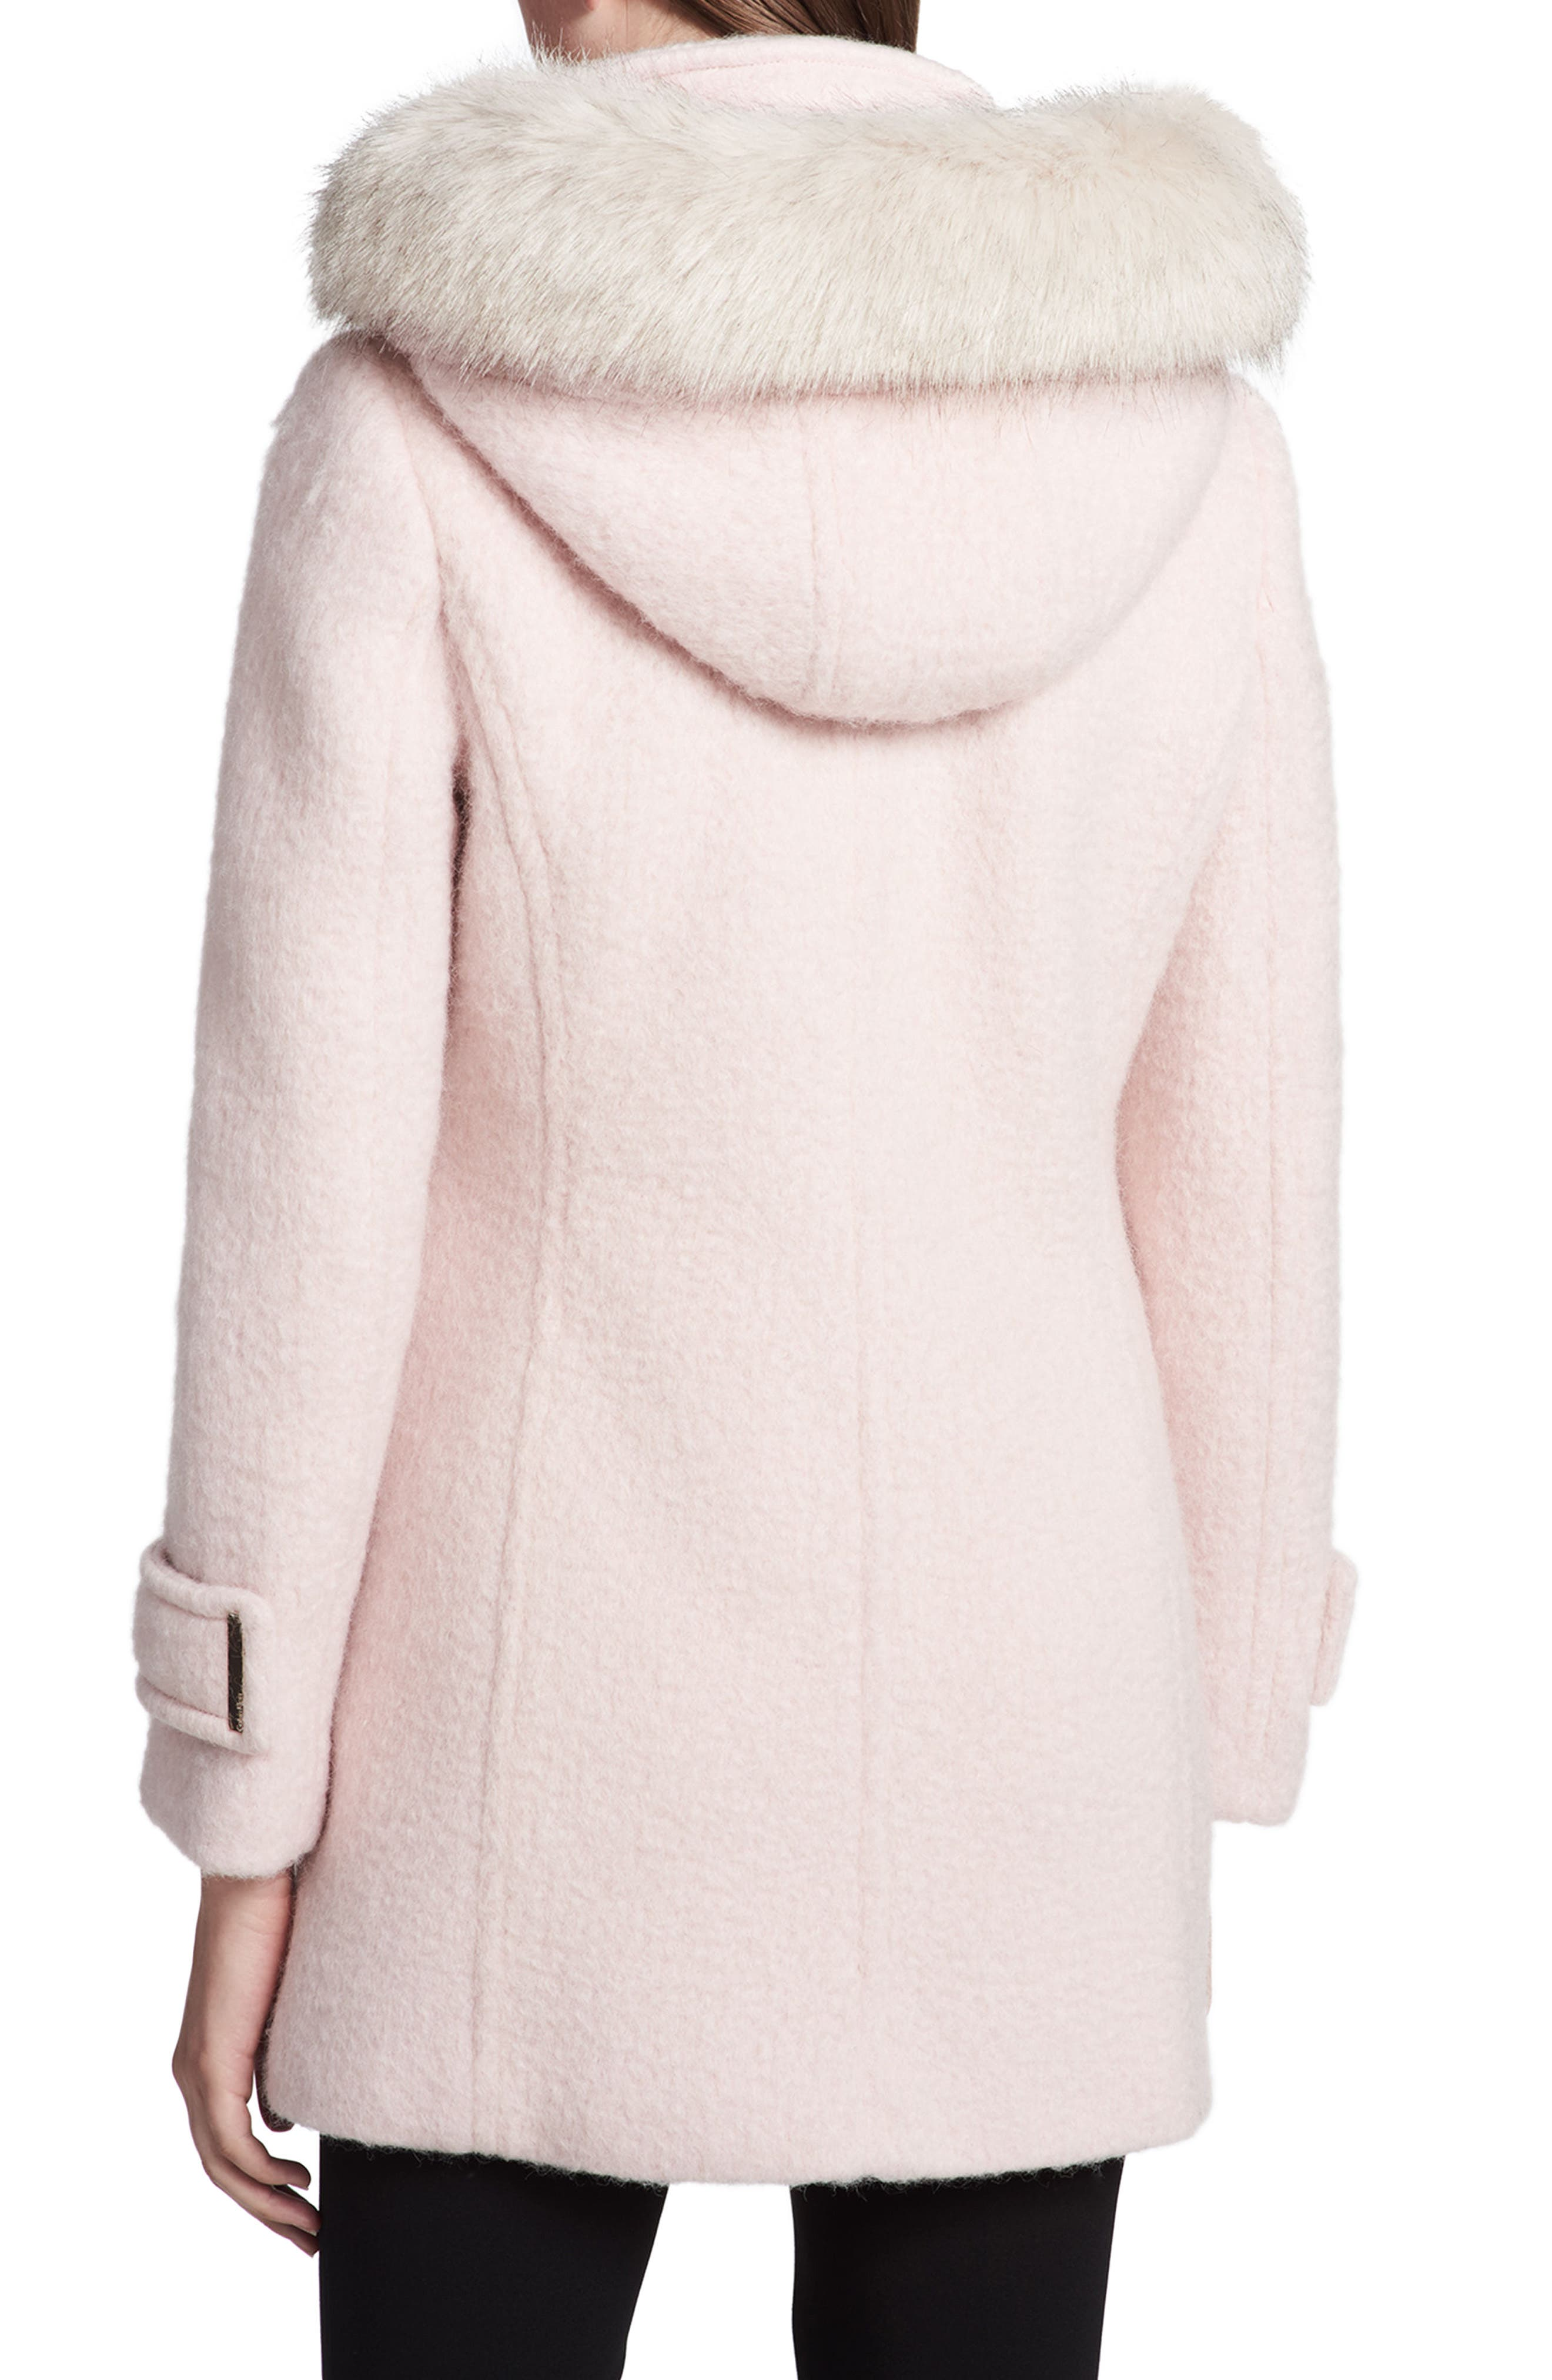 Hooded Wool Blend Jacket with Faux Fur Trim,                             Alternate thumbnail 6, color,